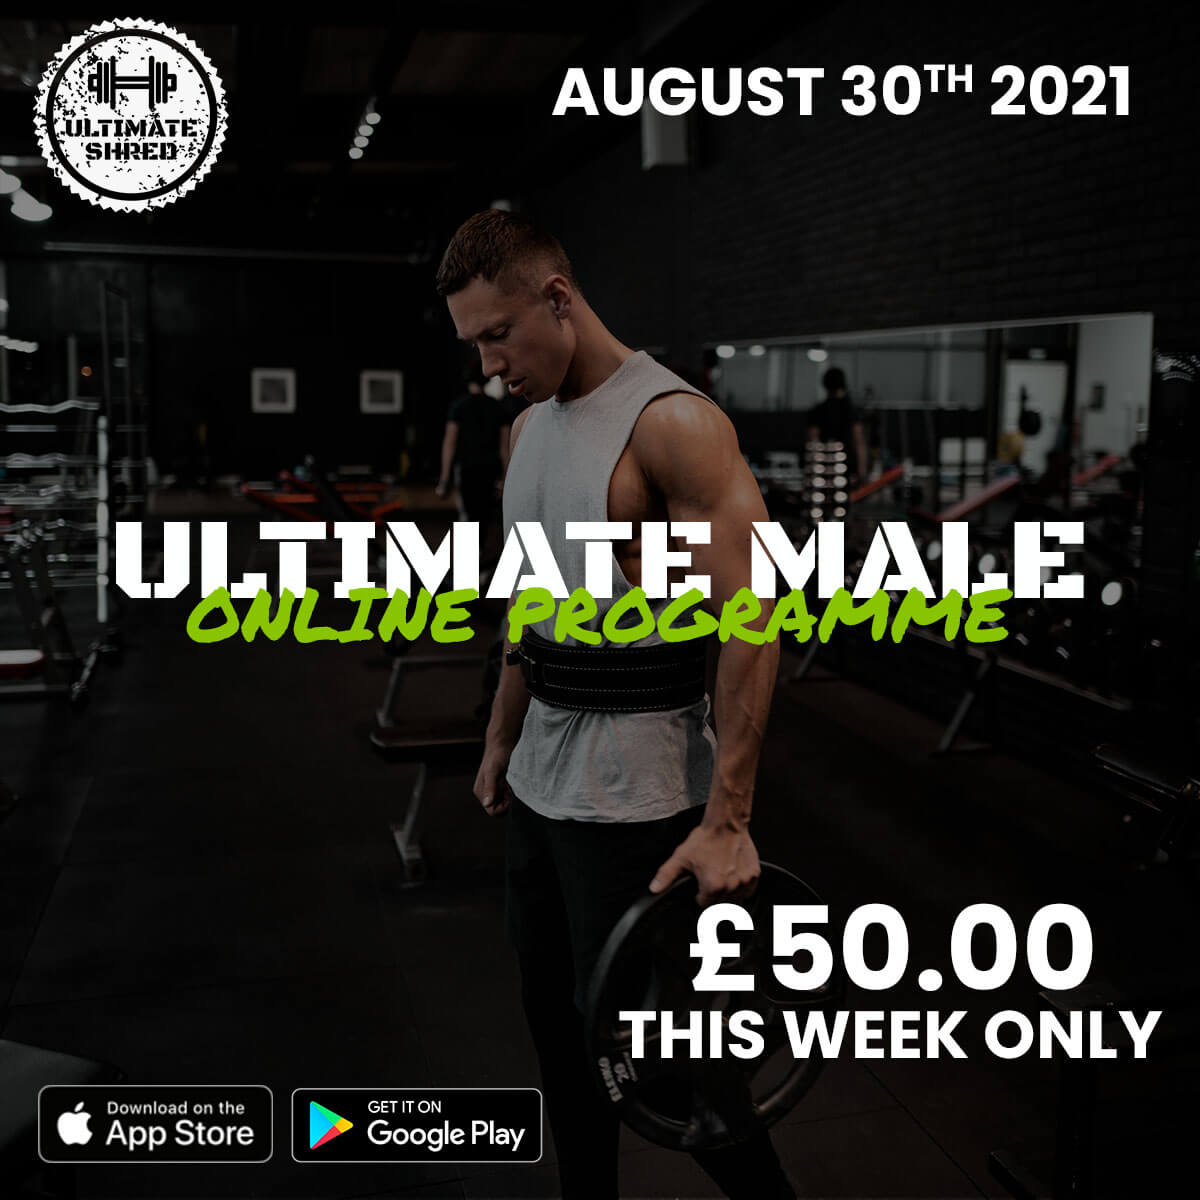 Ultimate Male August 30th 2021